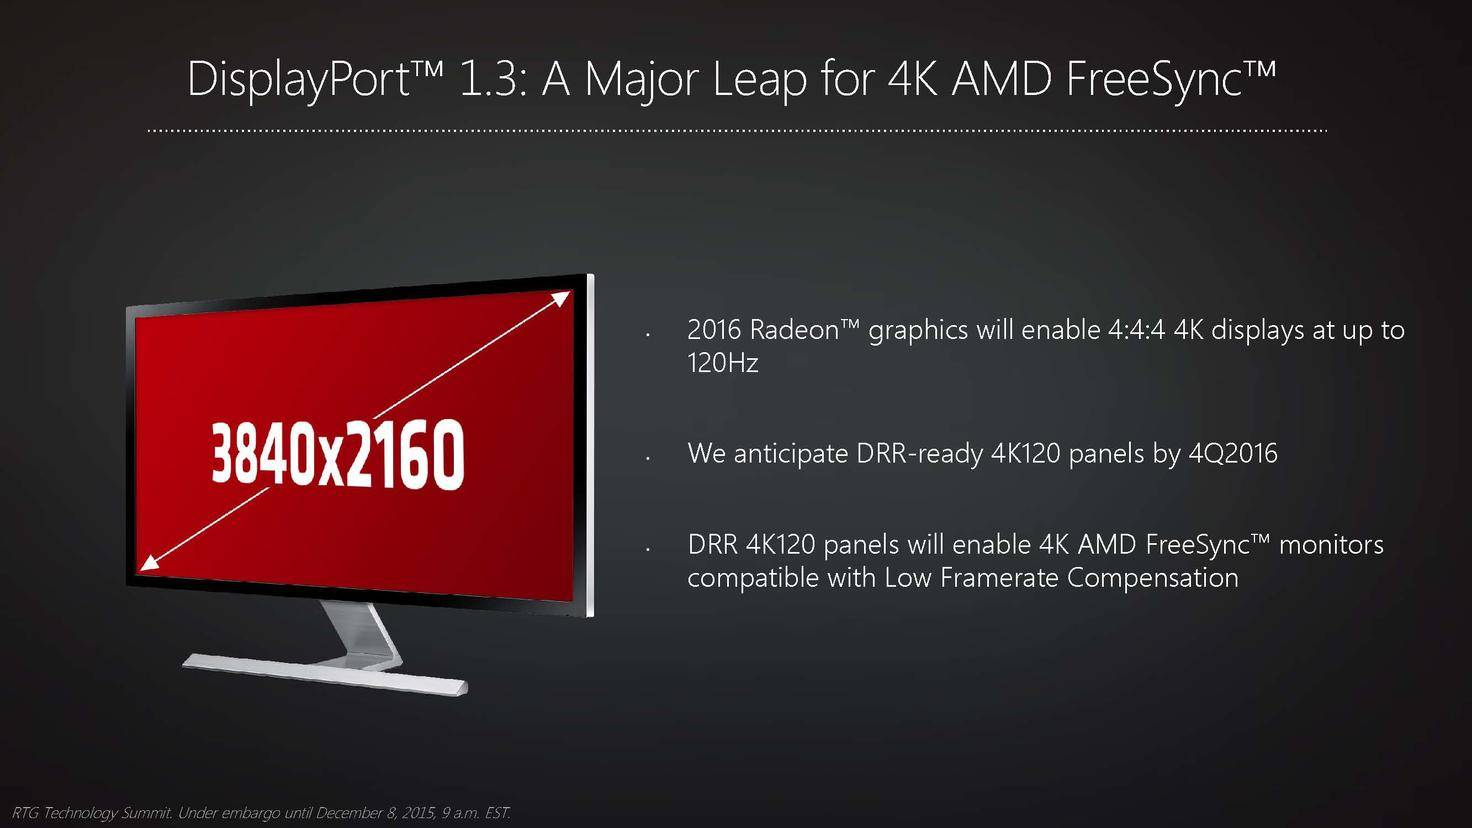 Freesync DisplayPort 1.3